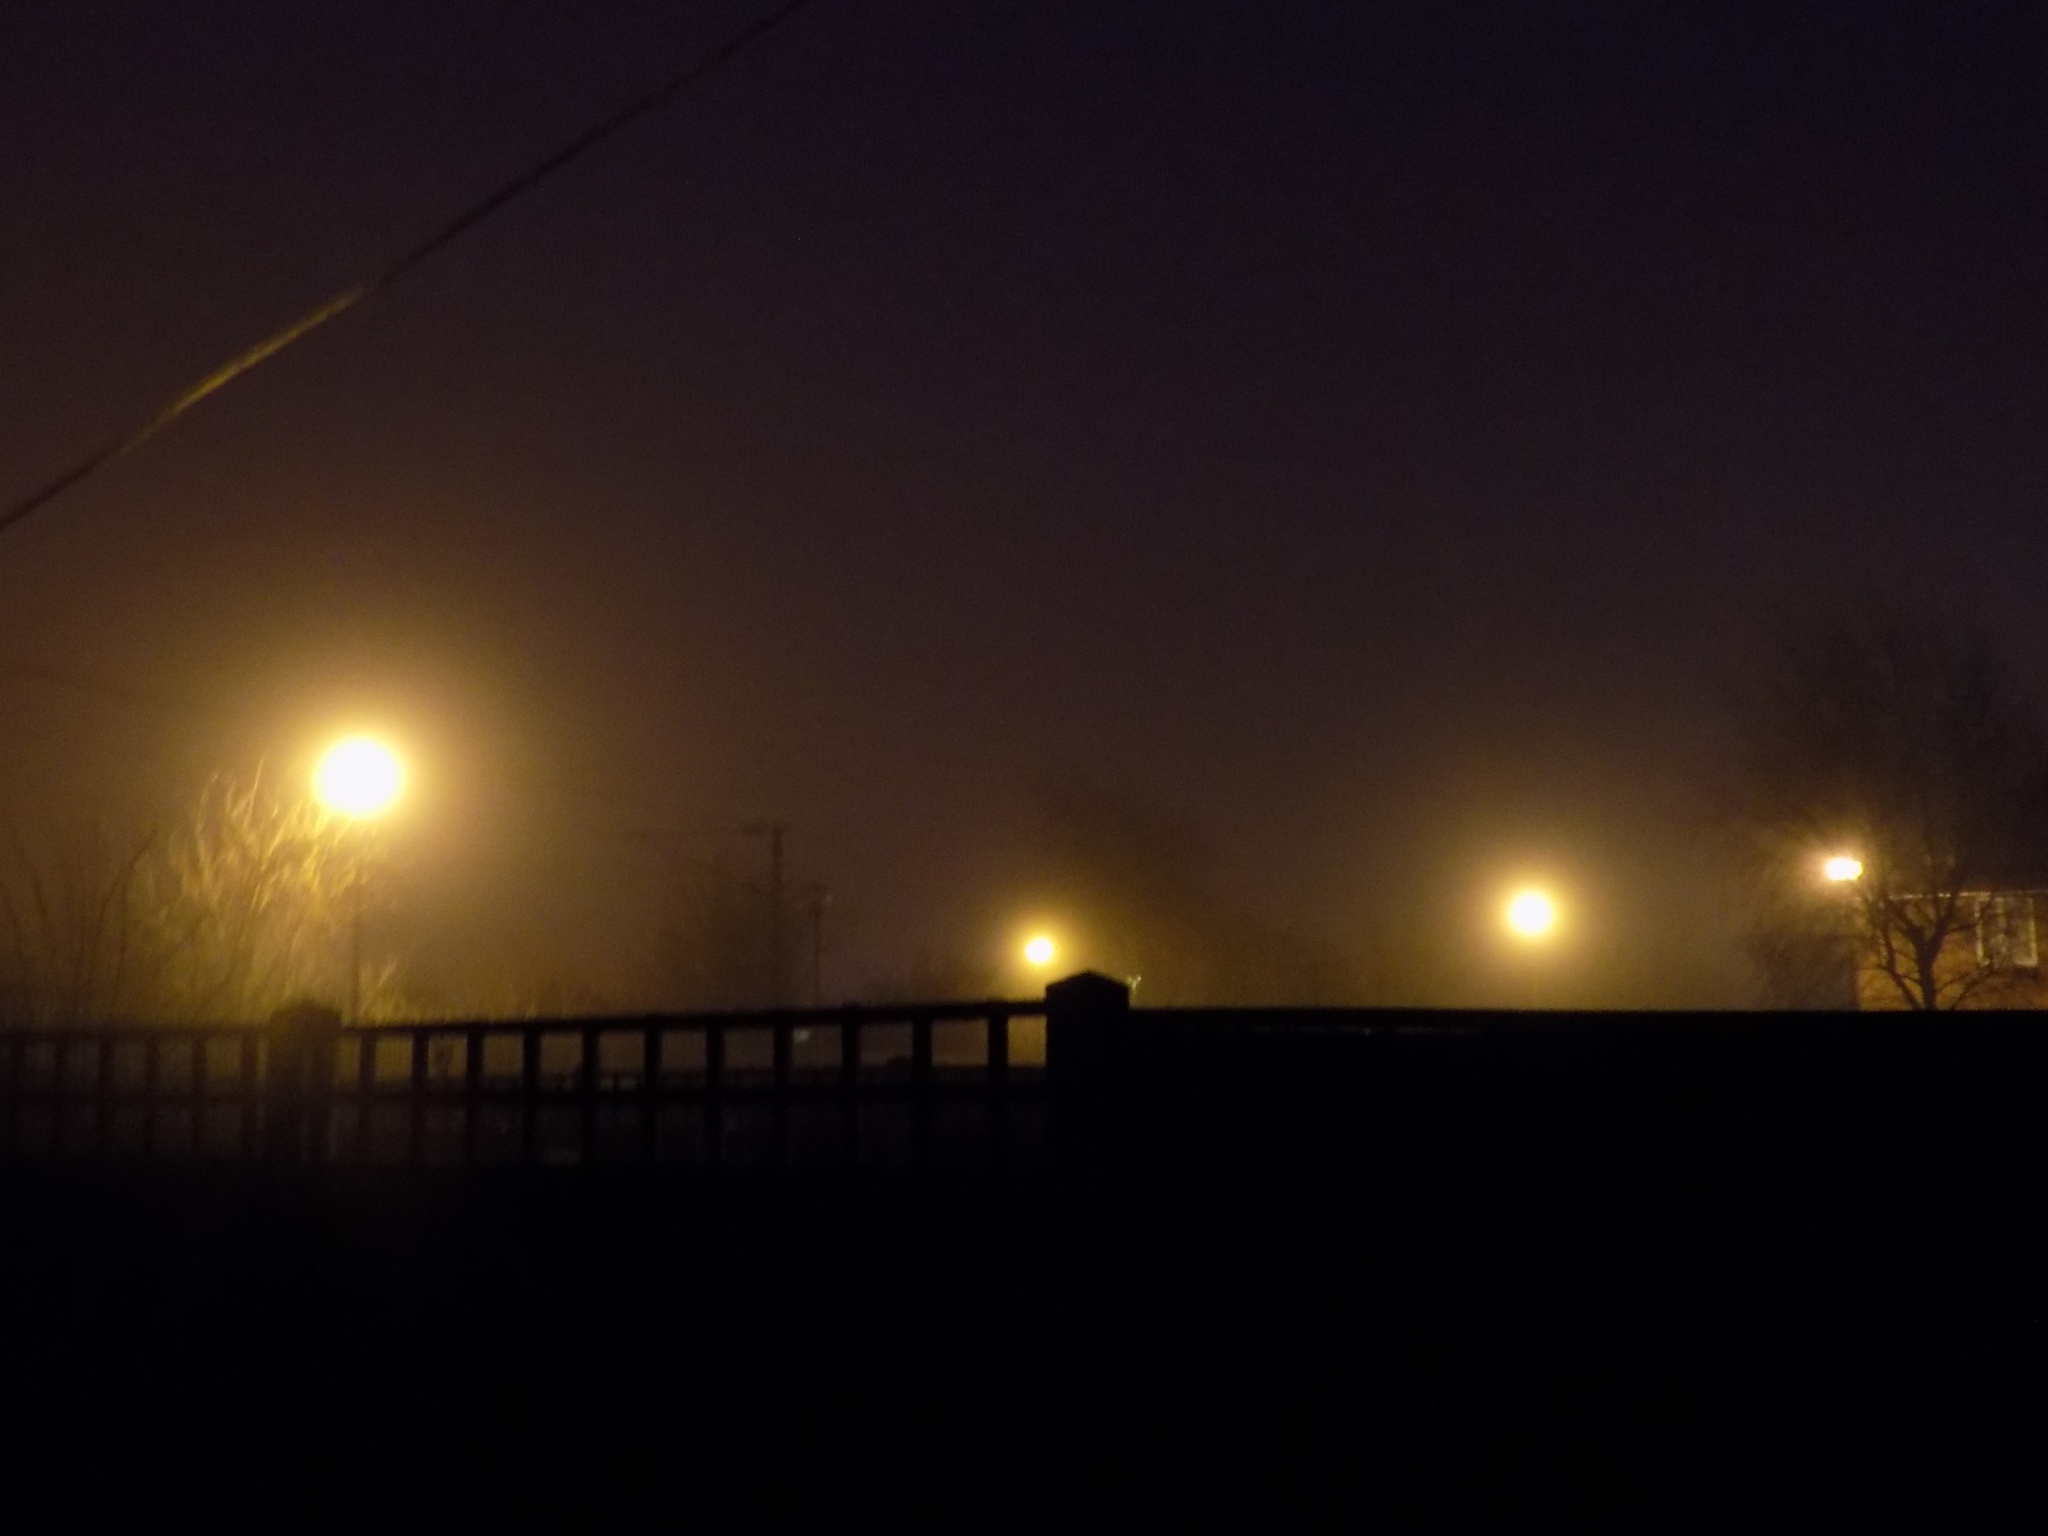 Foggy Lights by sweetybabe72